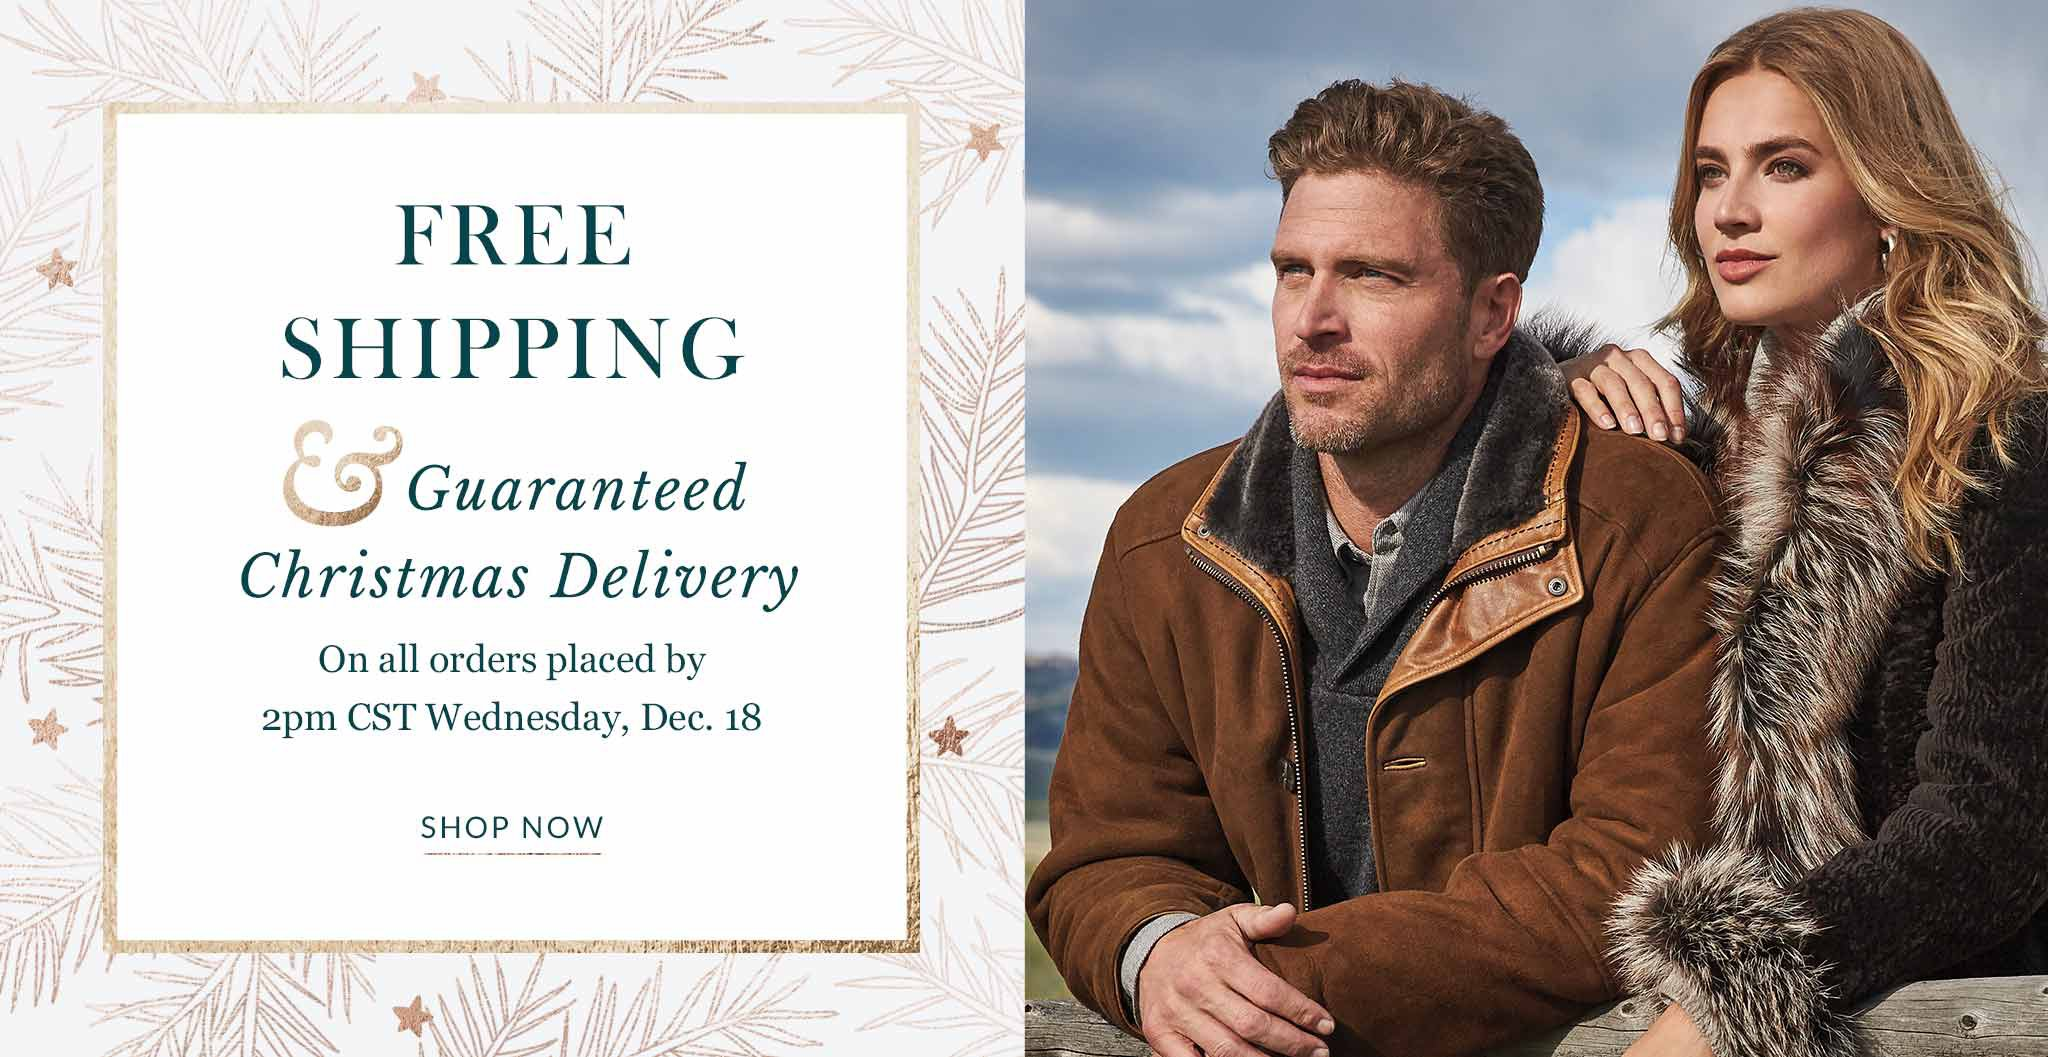 Free shipping and Christmas delivery